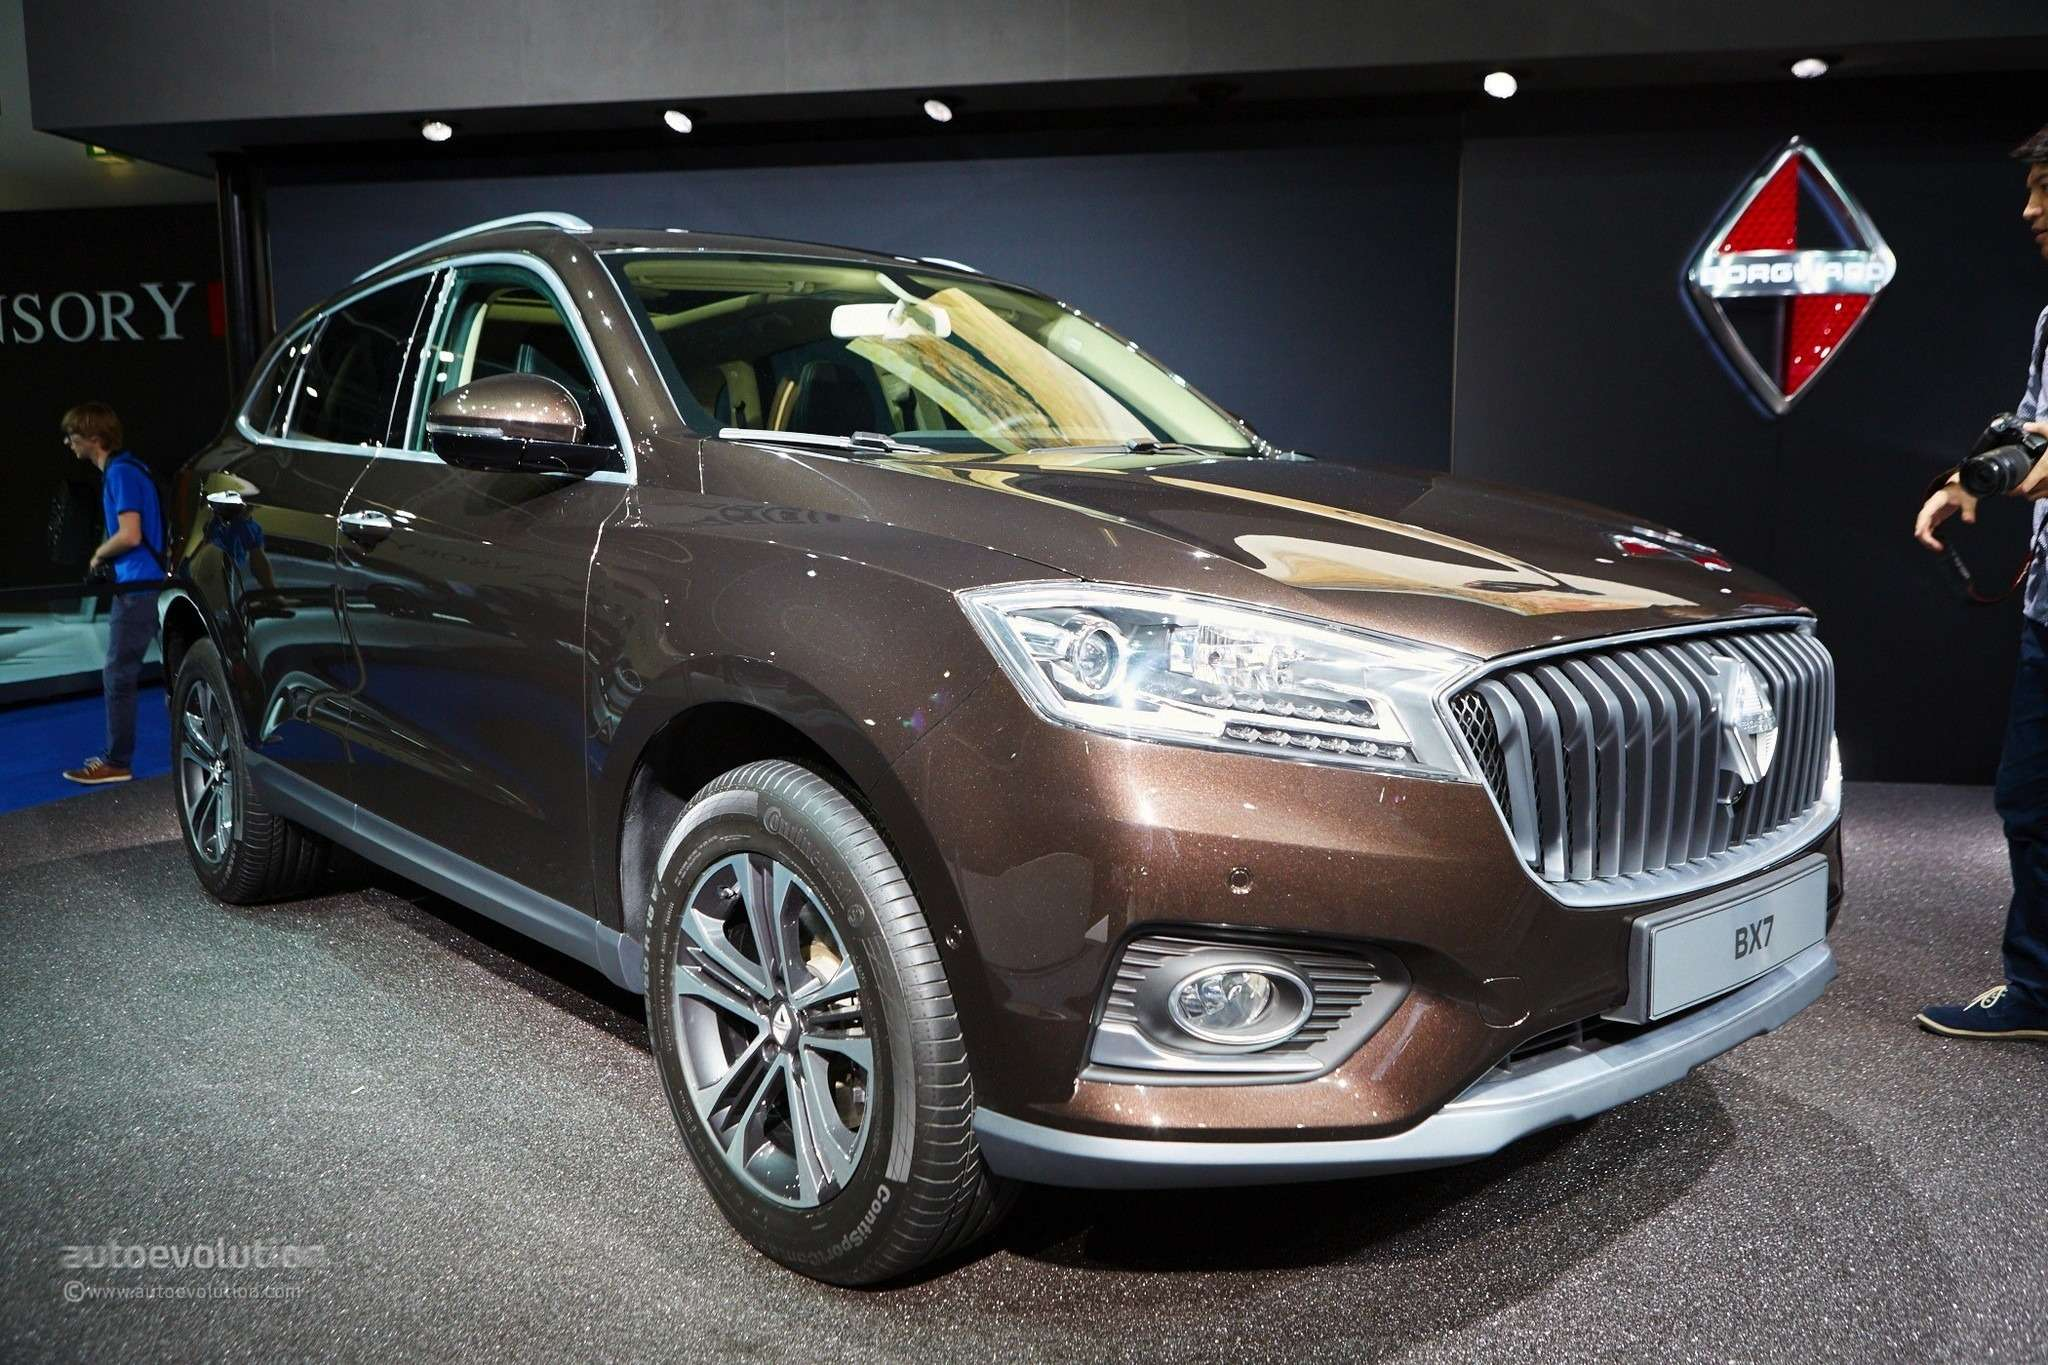 borgward-is-officially-back-with-its-bx7-suv-in-frankfurt-live-photos_23